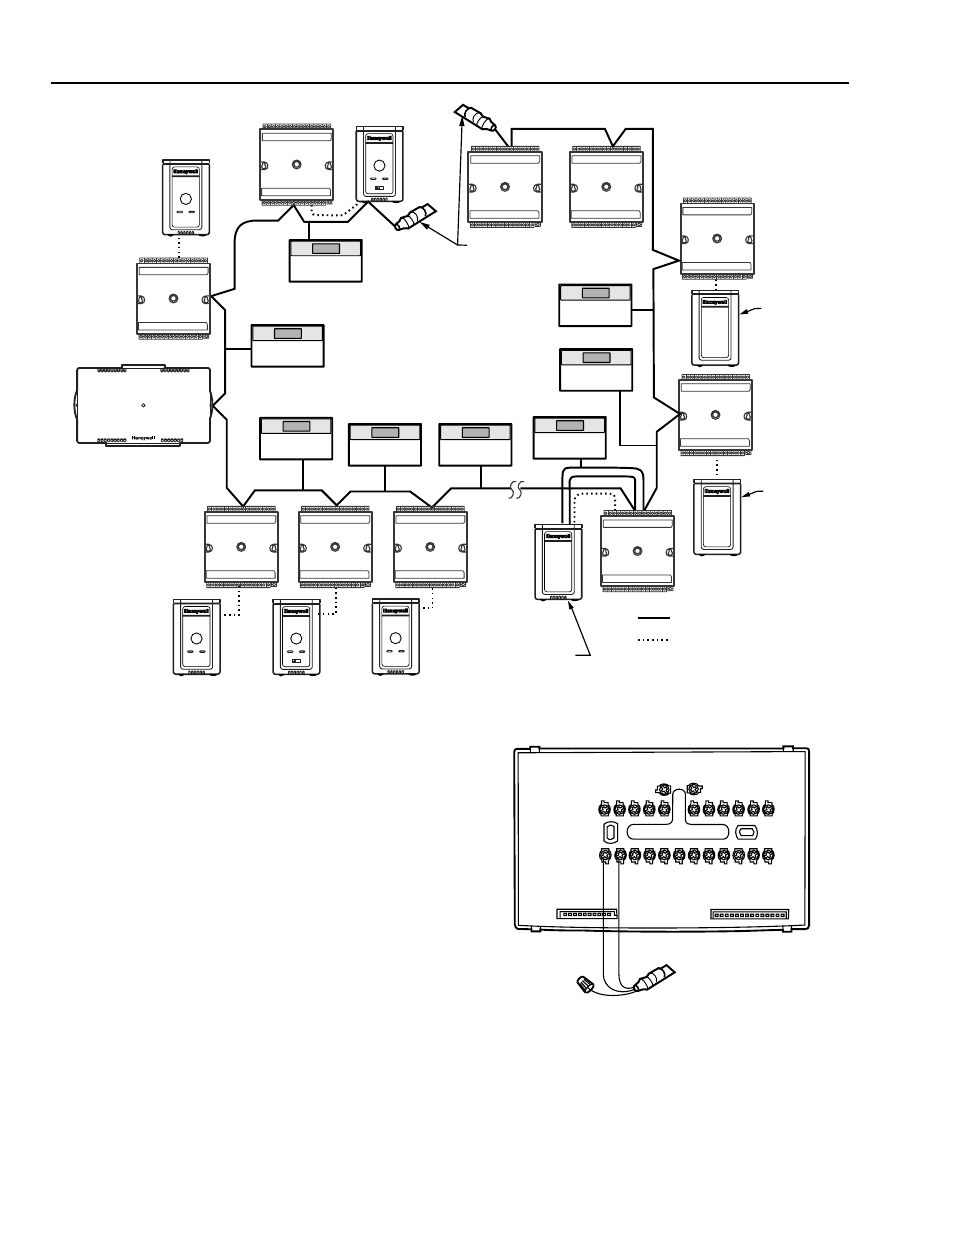 Cable termination, Singly terminated network segment